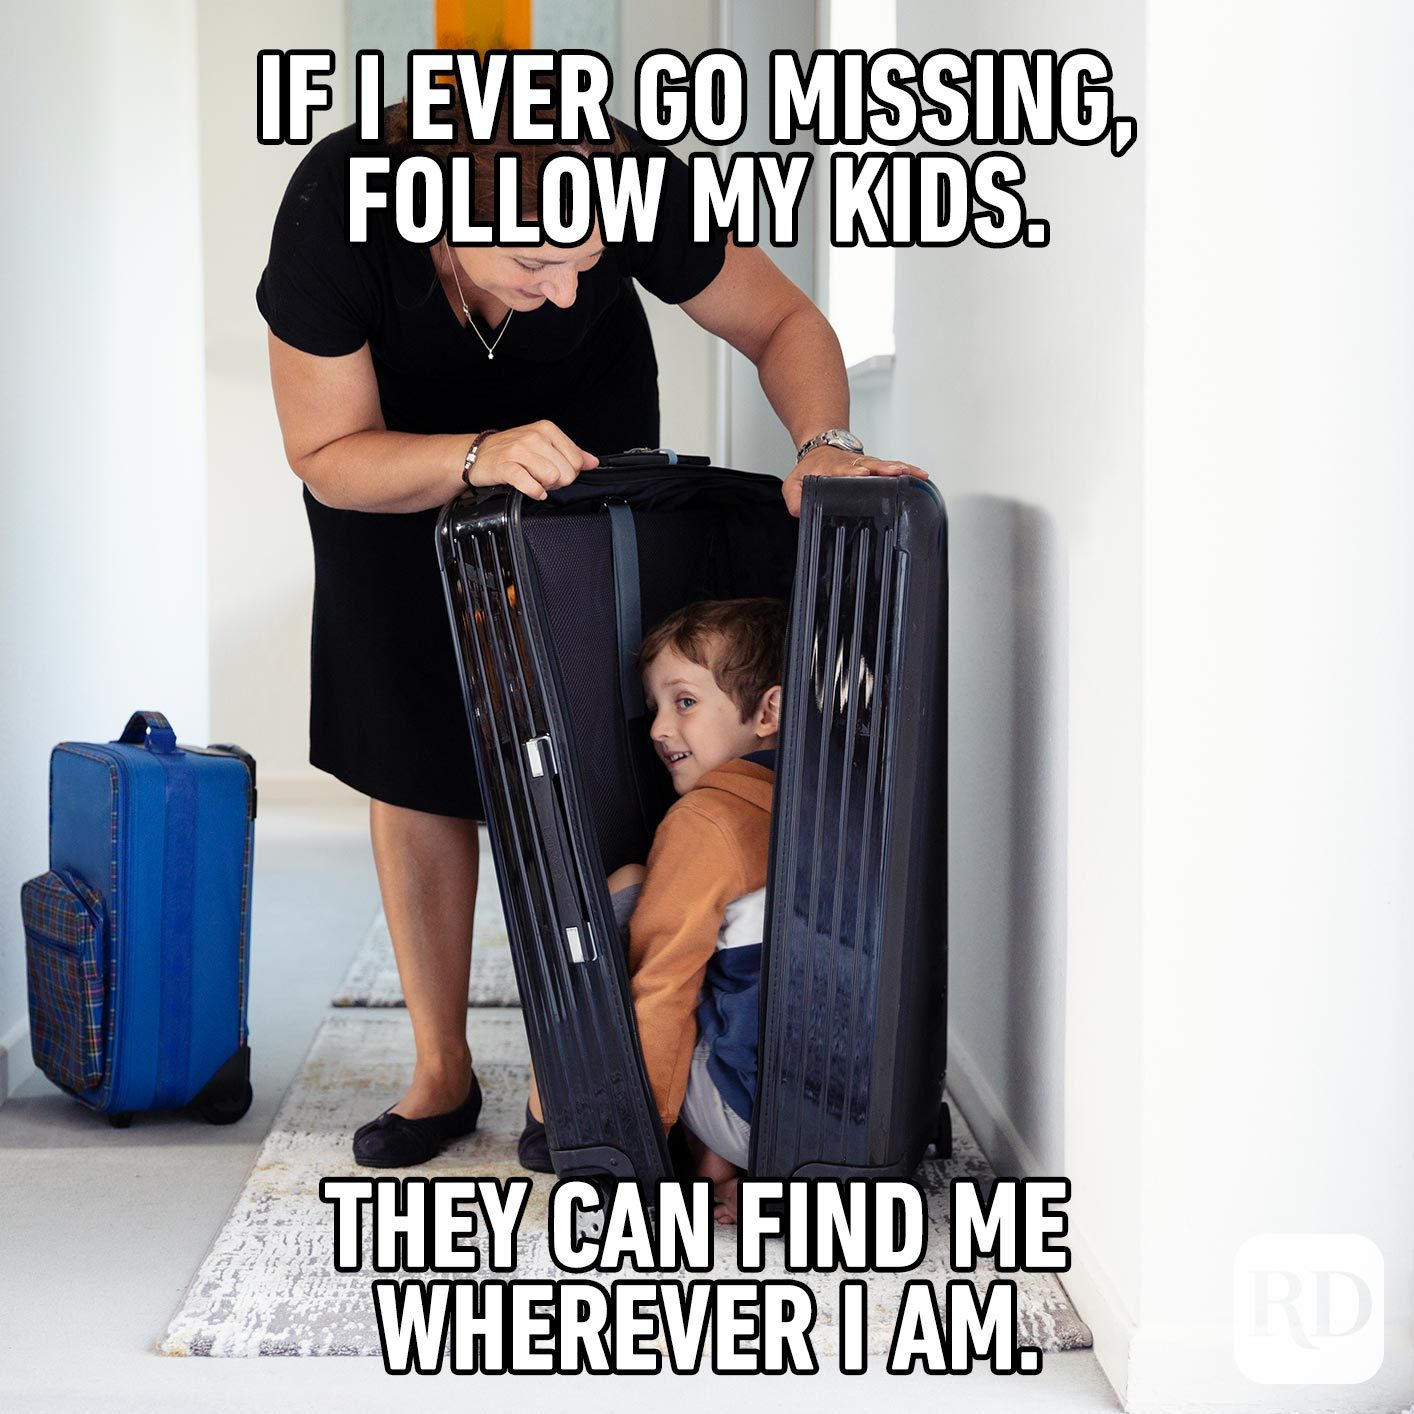 A mother finding her child hiding in a suitcase. MEME TEXT: If I ever go missing, follow my kids. They can find me wherever I am.